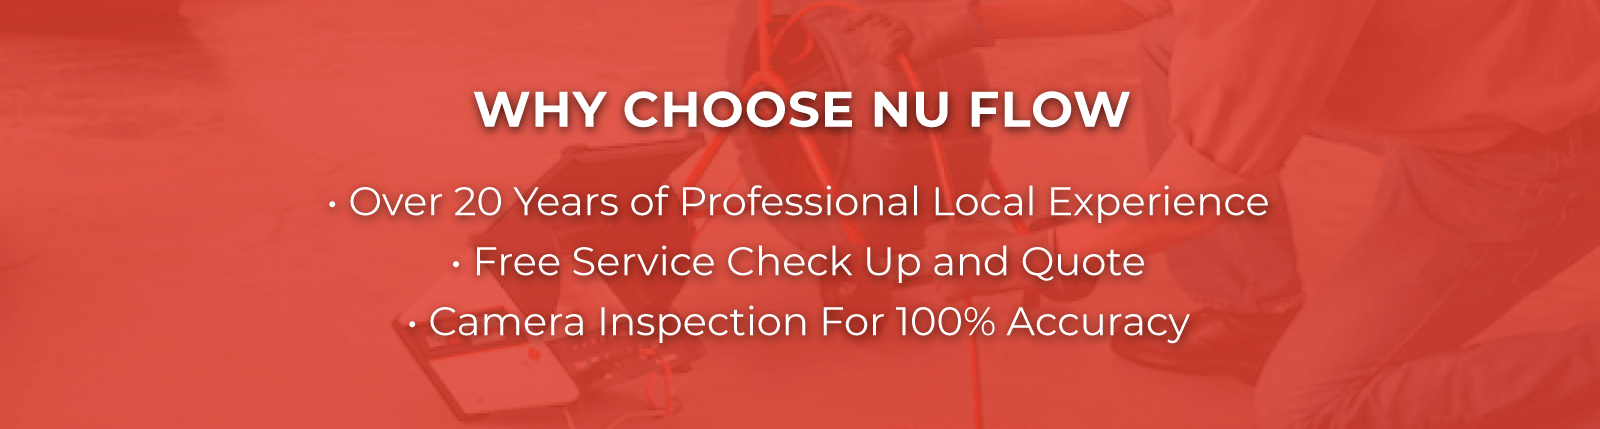 nu flow oklahoma sewer repair 1 Sewer Camera Inspection Midwest City, OK